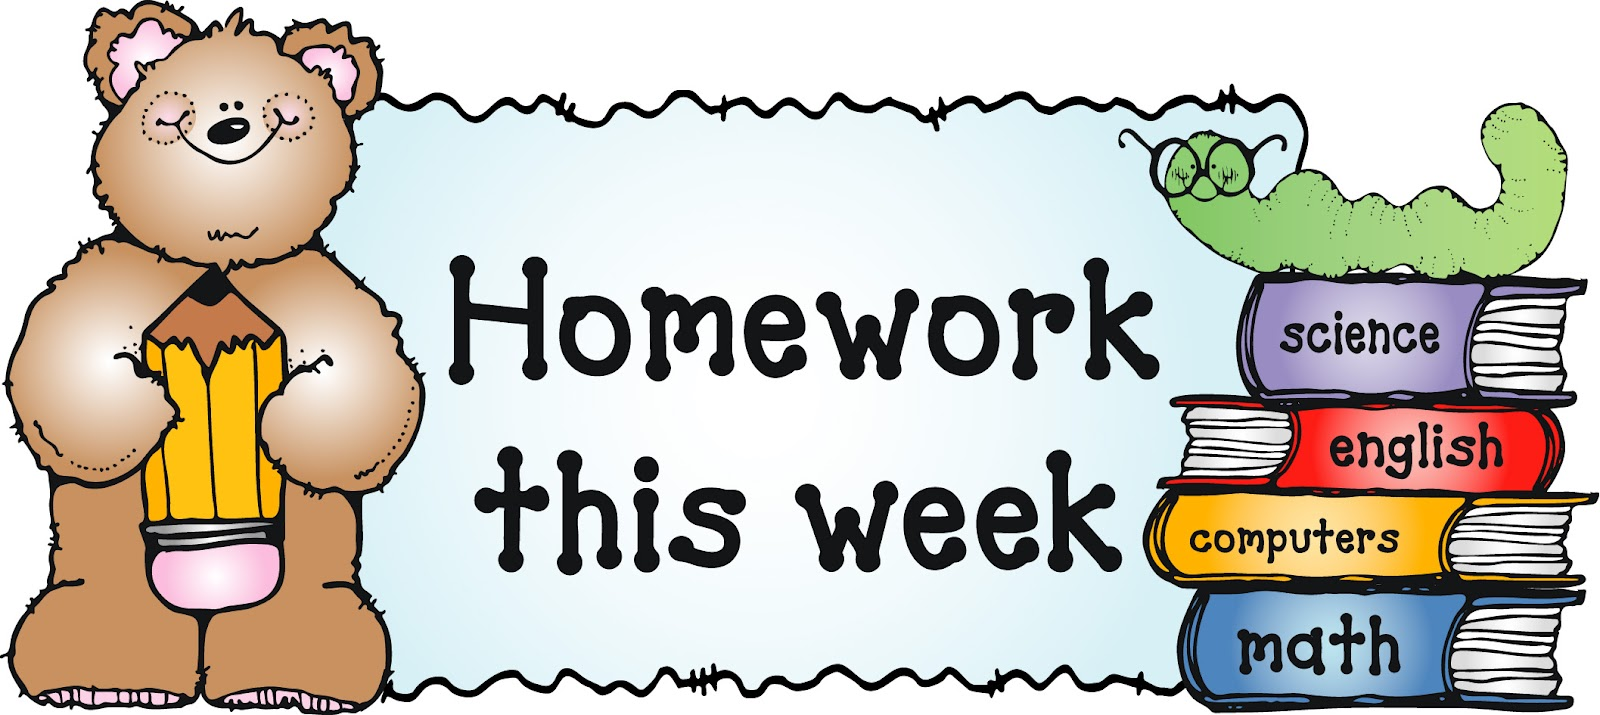 Homework clip art for kids free clipart images 6.